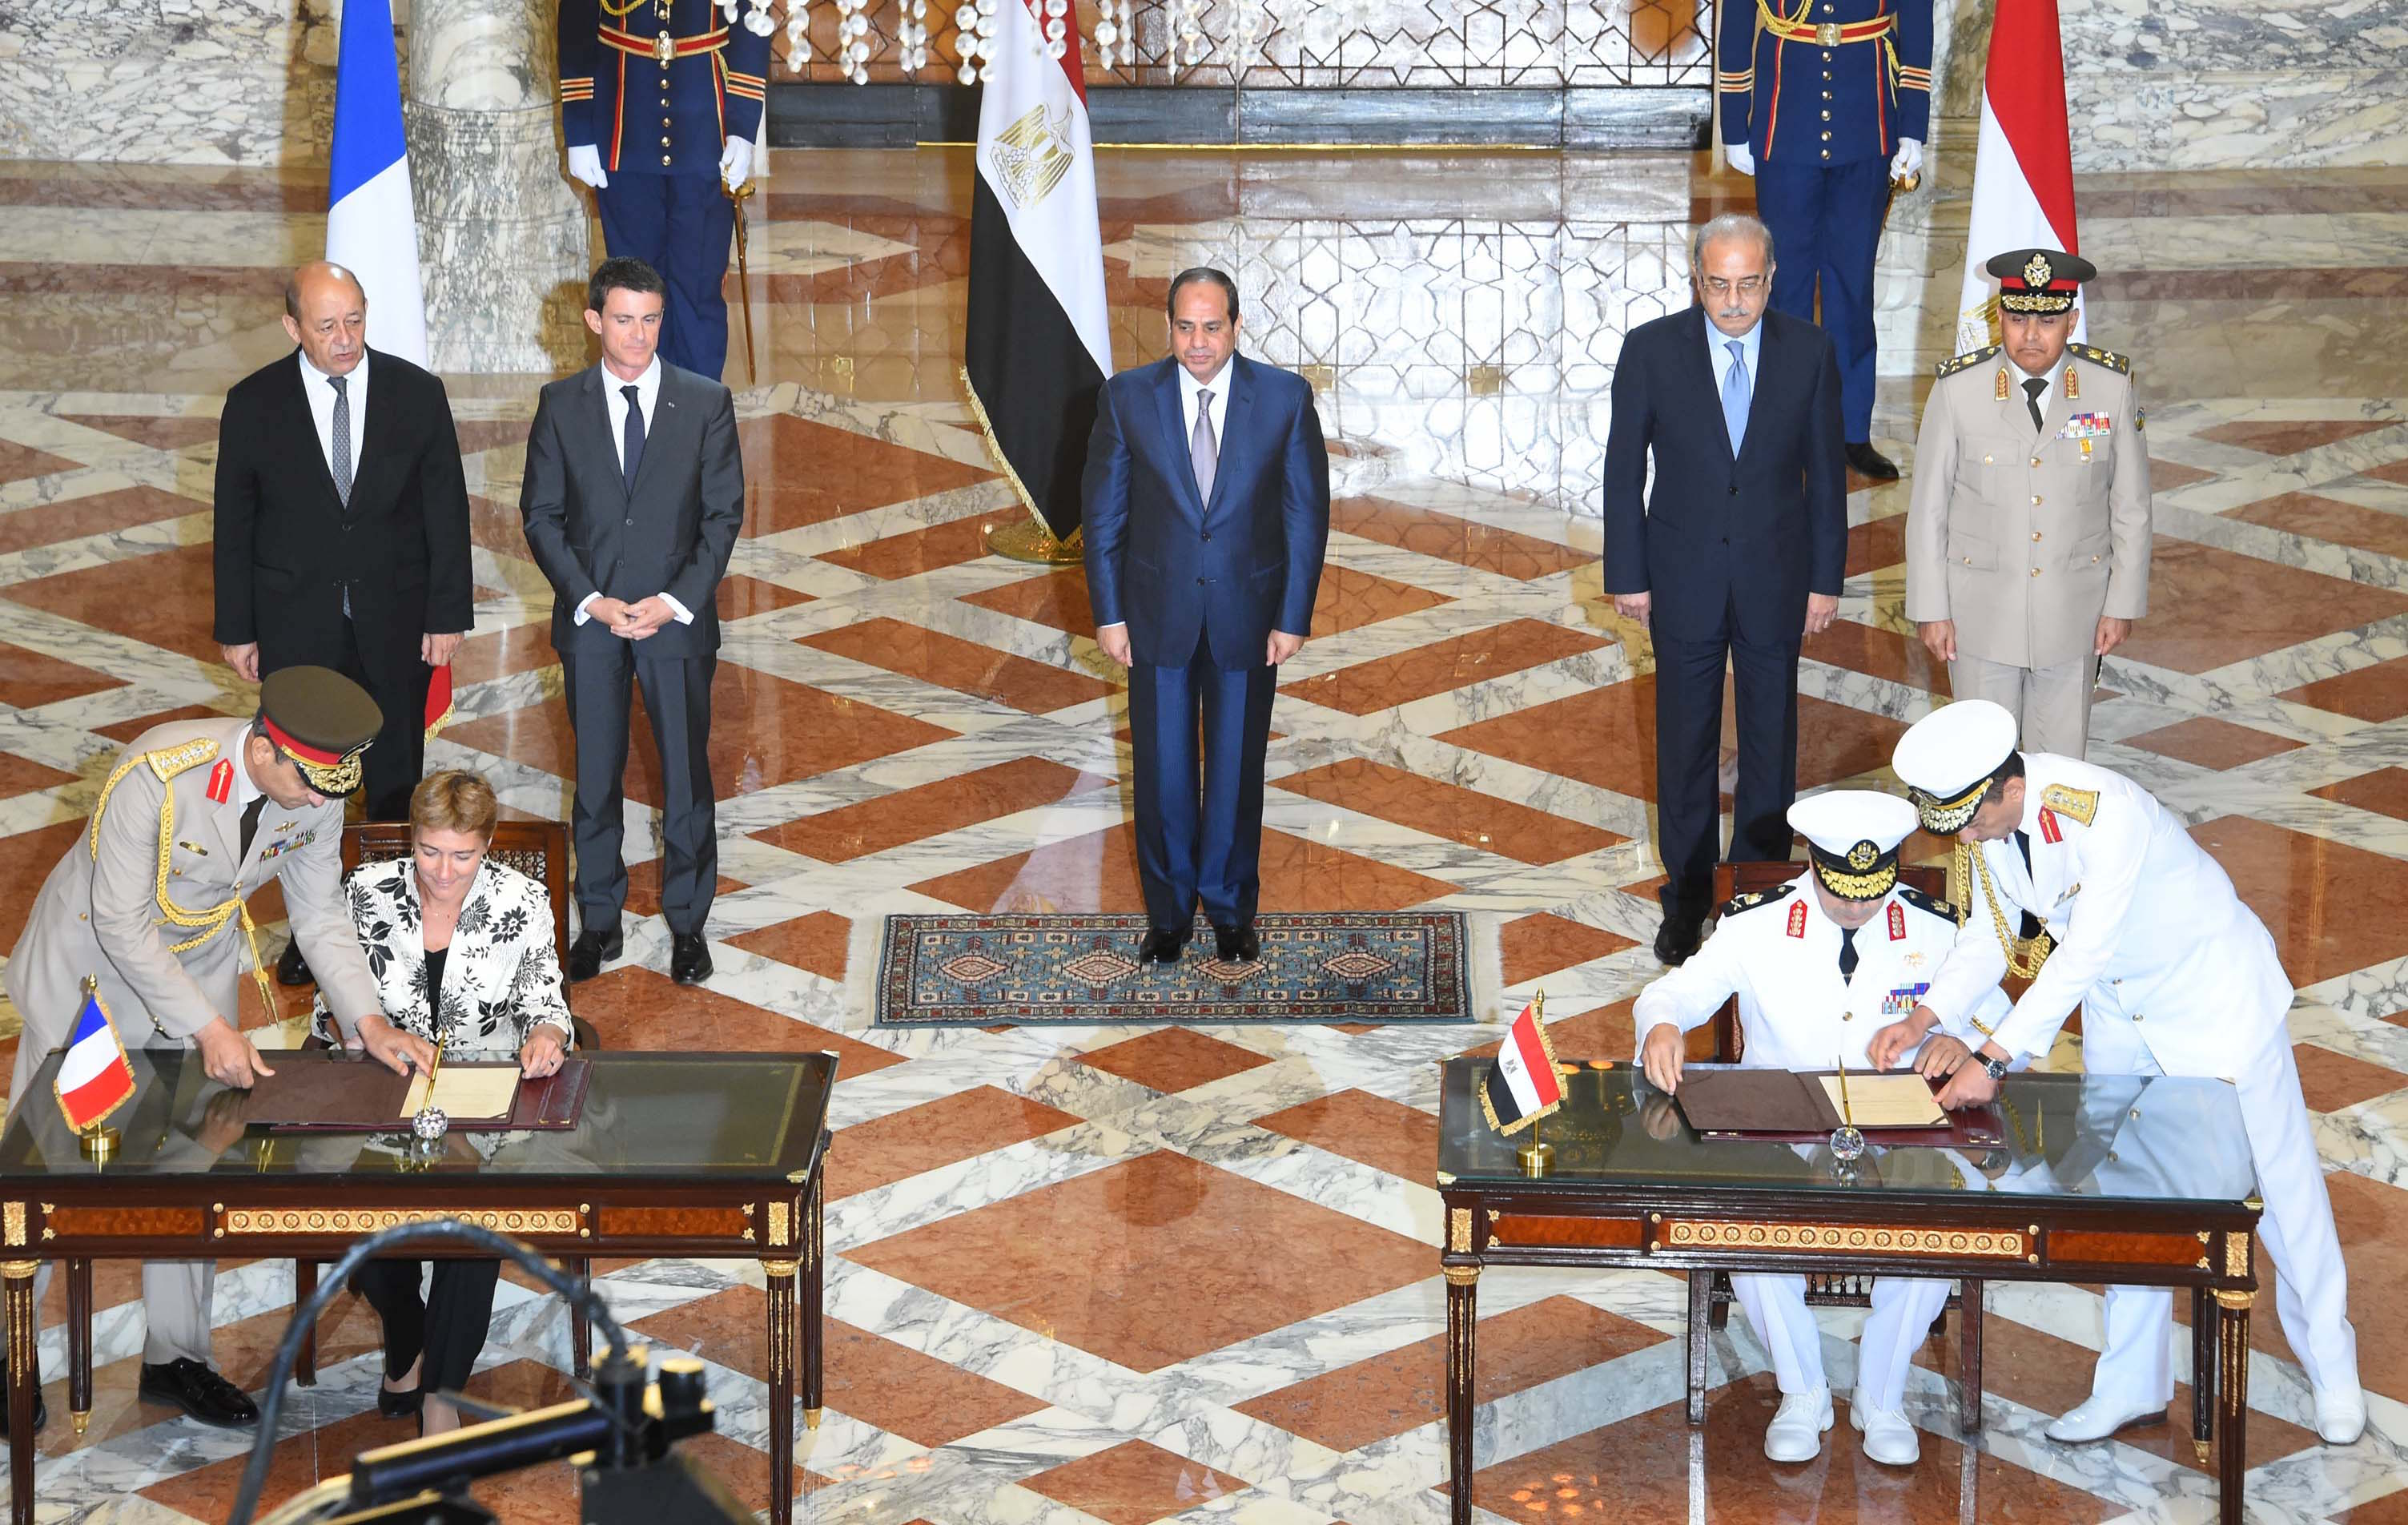 Egyptian President Abdel Fattah El-Sisi with the French and Egyptian Prime Ministers and Ministers of Defence at the deal-signing ceremony. PHOTO: Egypt's State Information Service